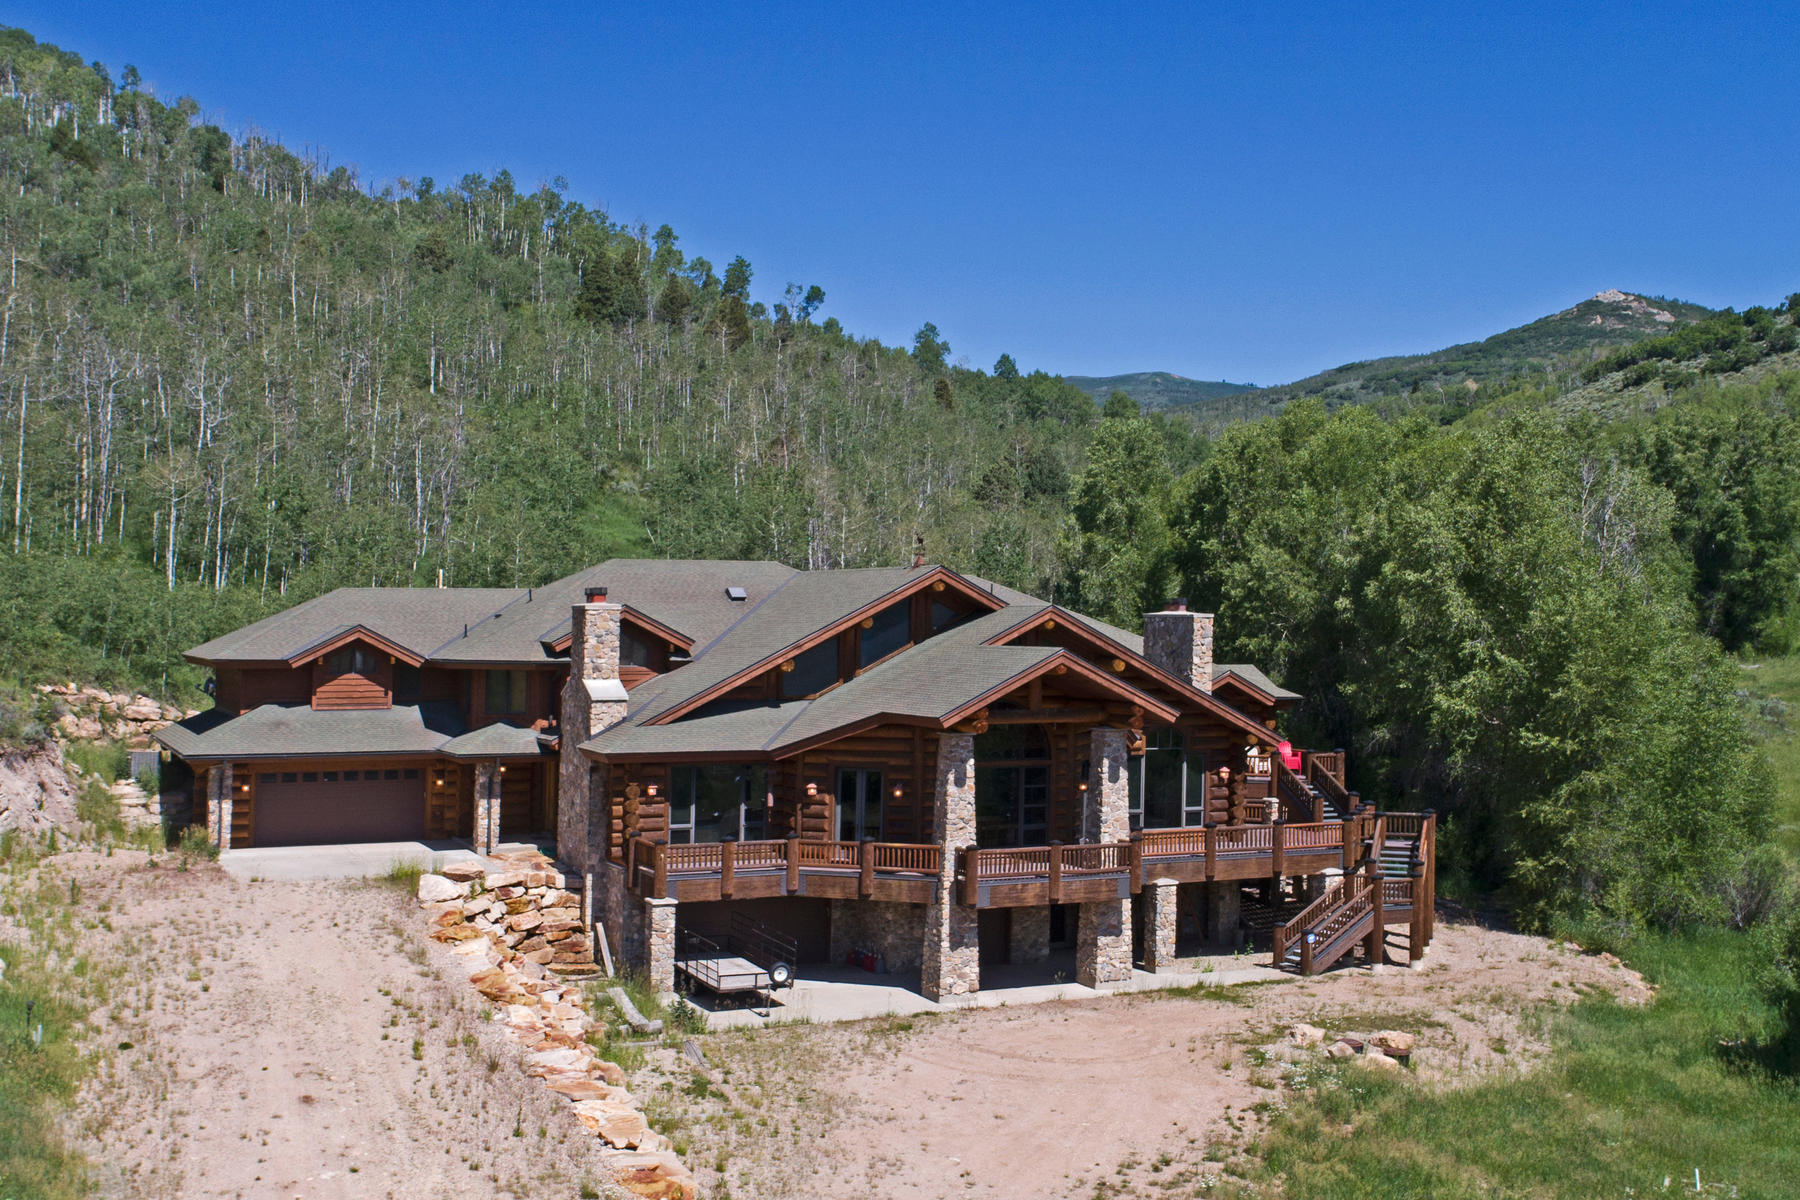 Single Family Home for Sale at Amazing One of a Kind Log Home 3950 E Weber Canyon Rd Oakley, Utah, 84055 United States